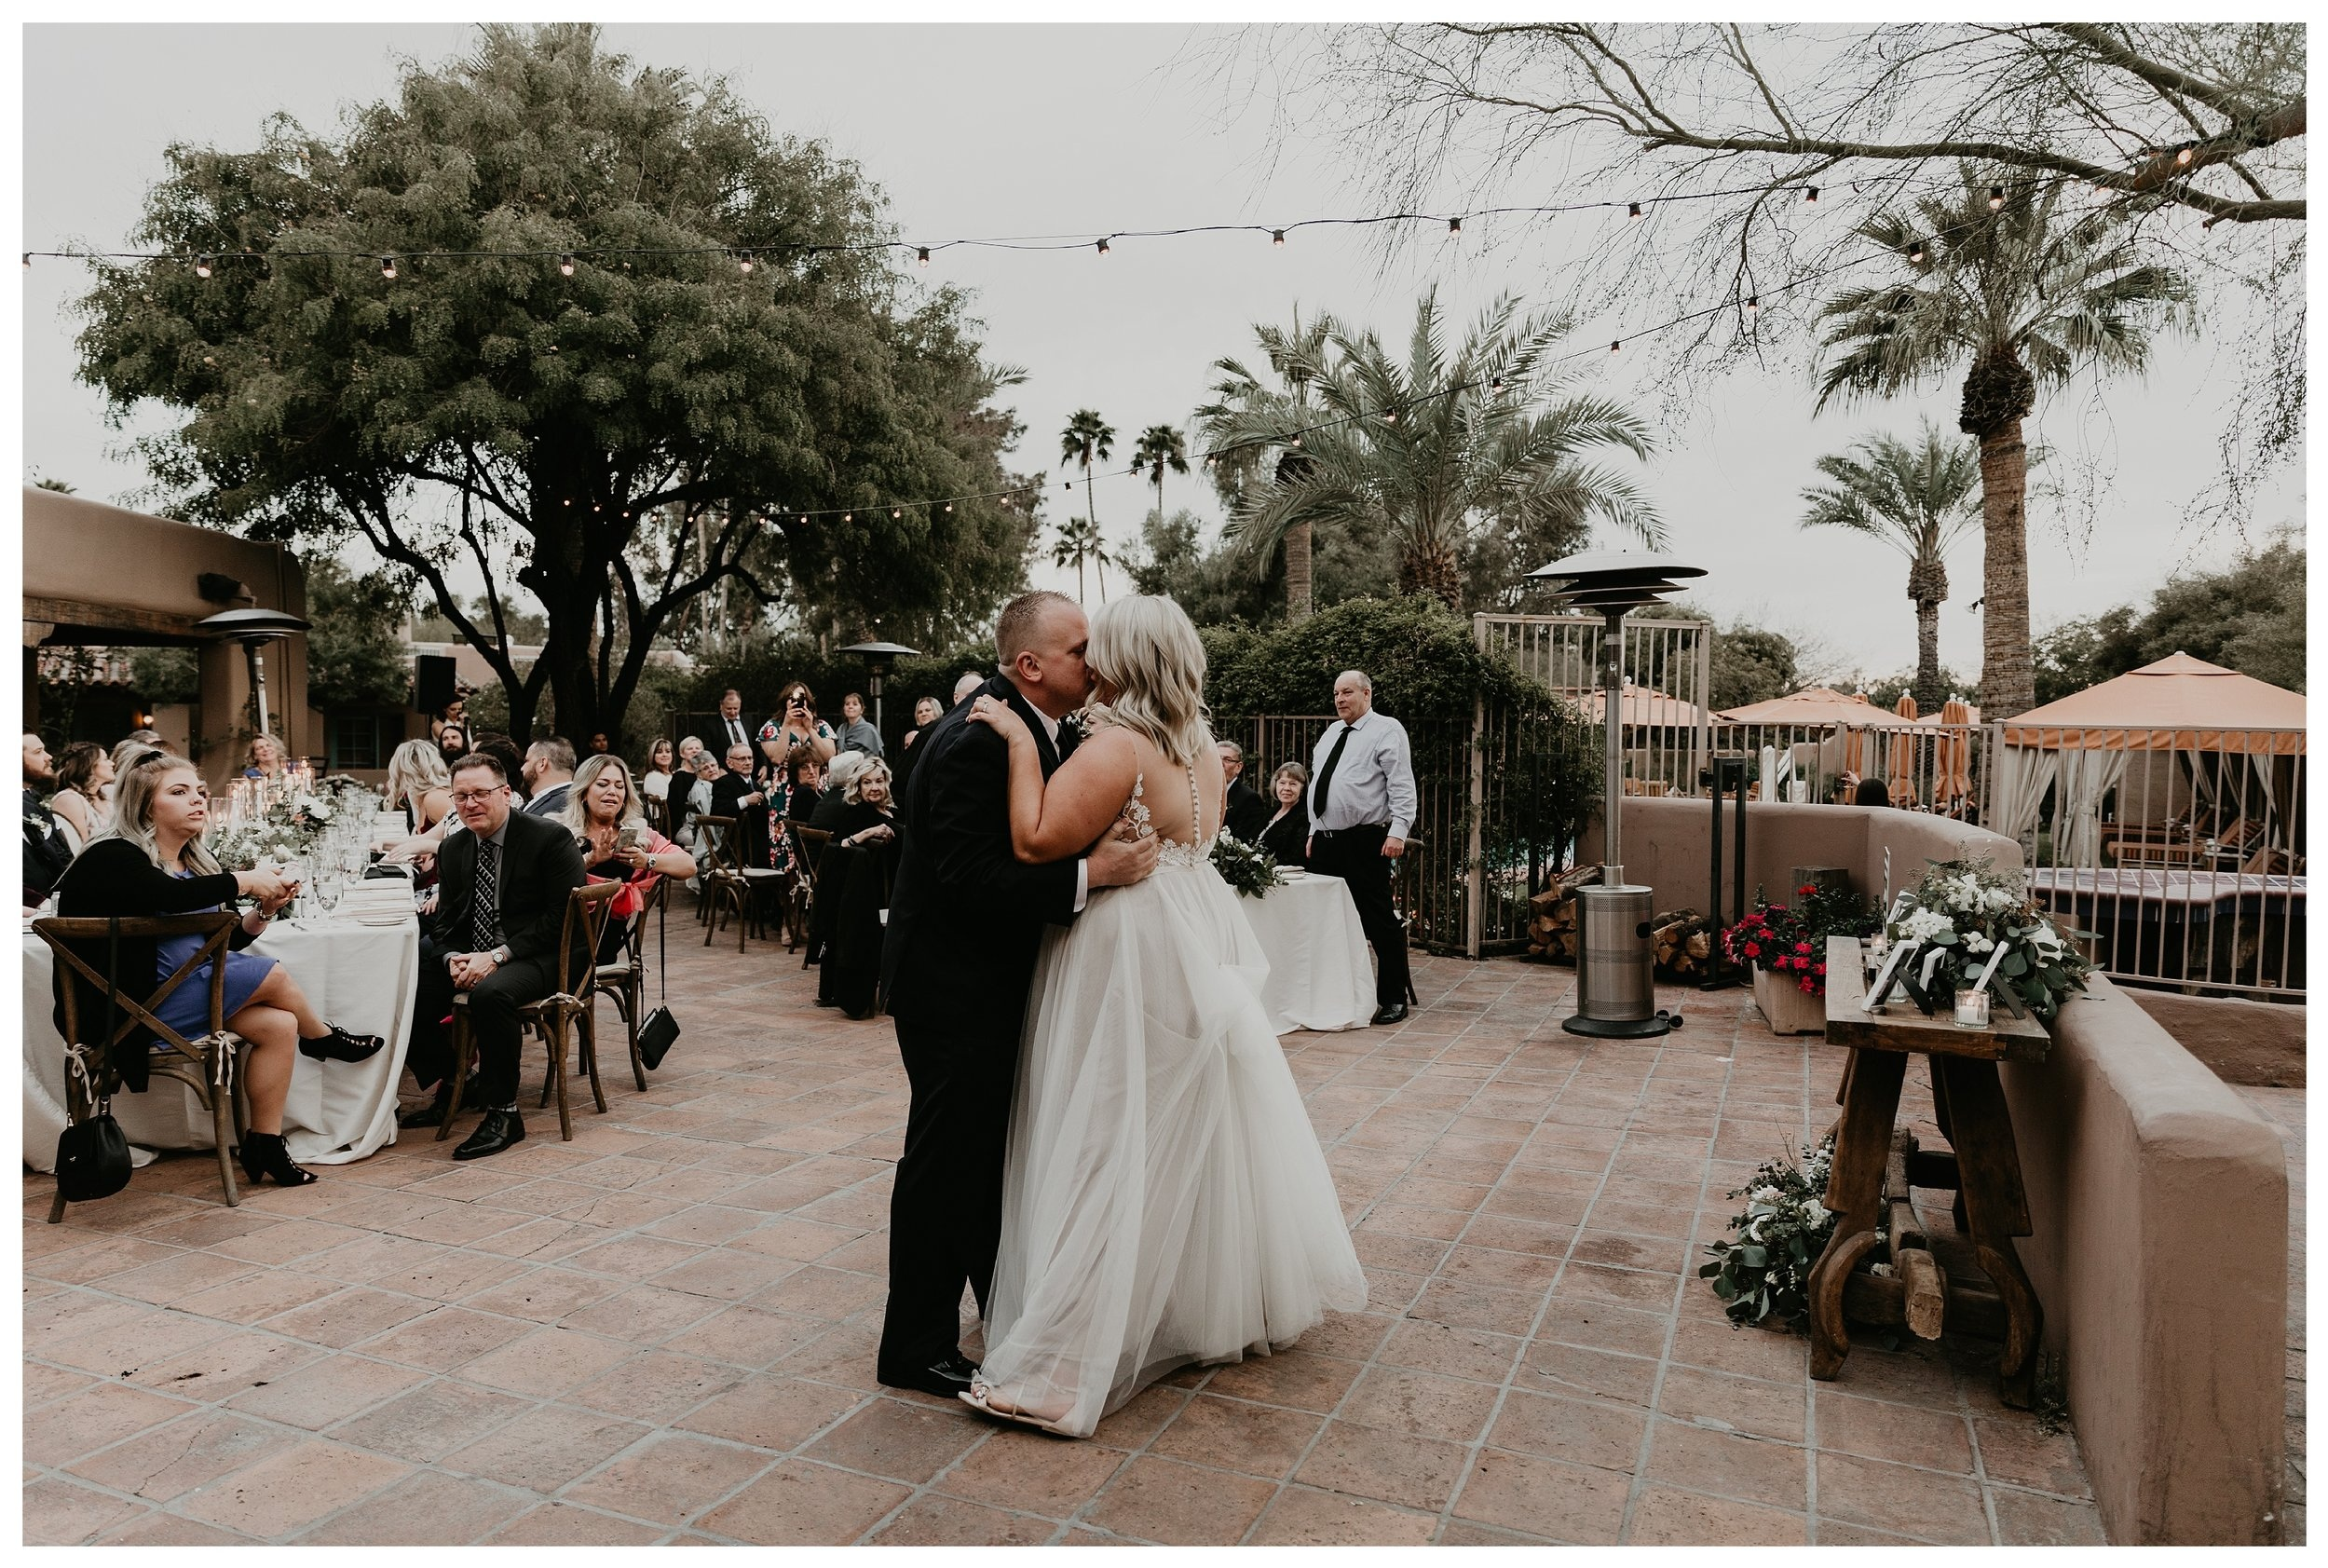 First dance at Hermosa Inn wedding in Arizona during romantic reception at sunset